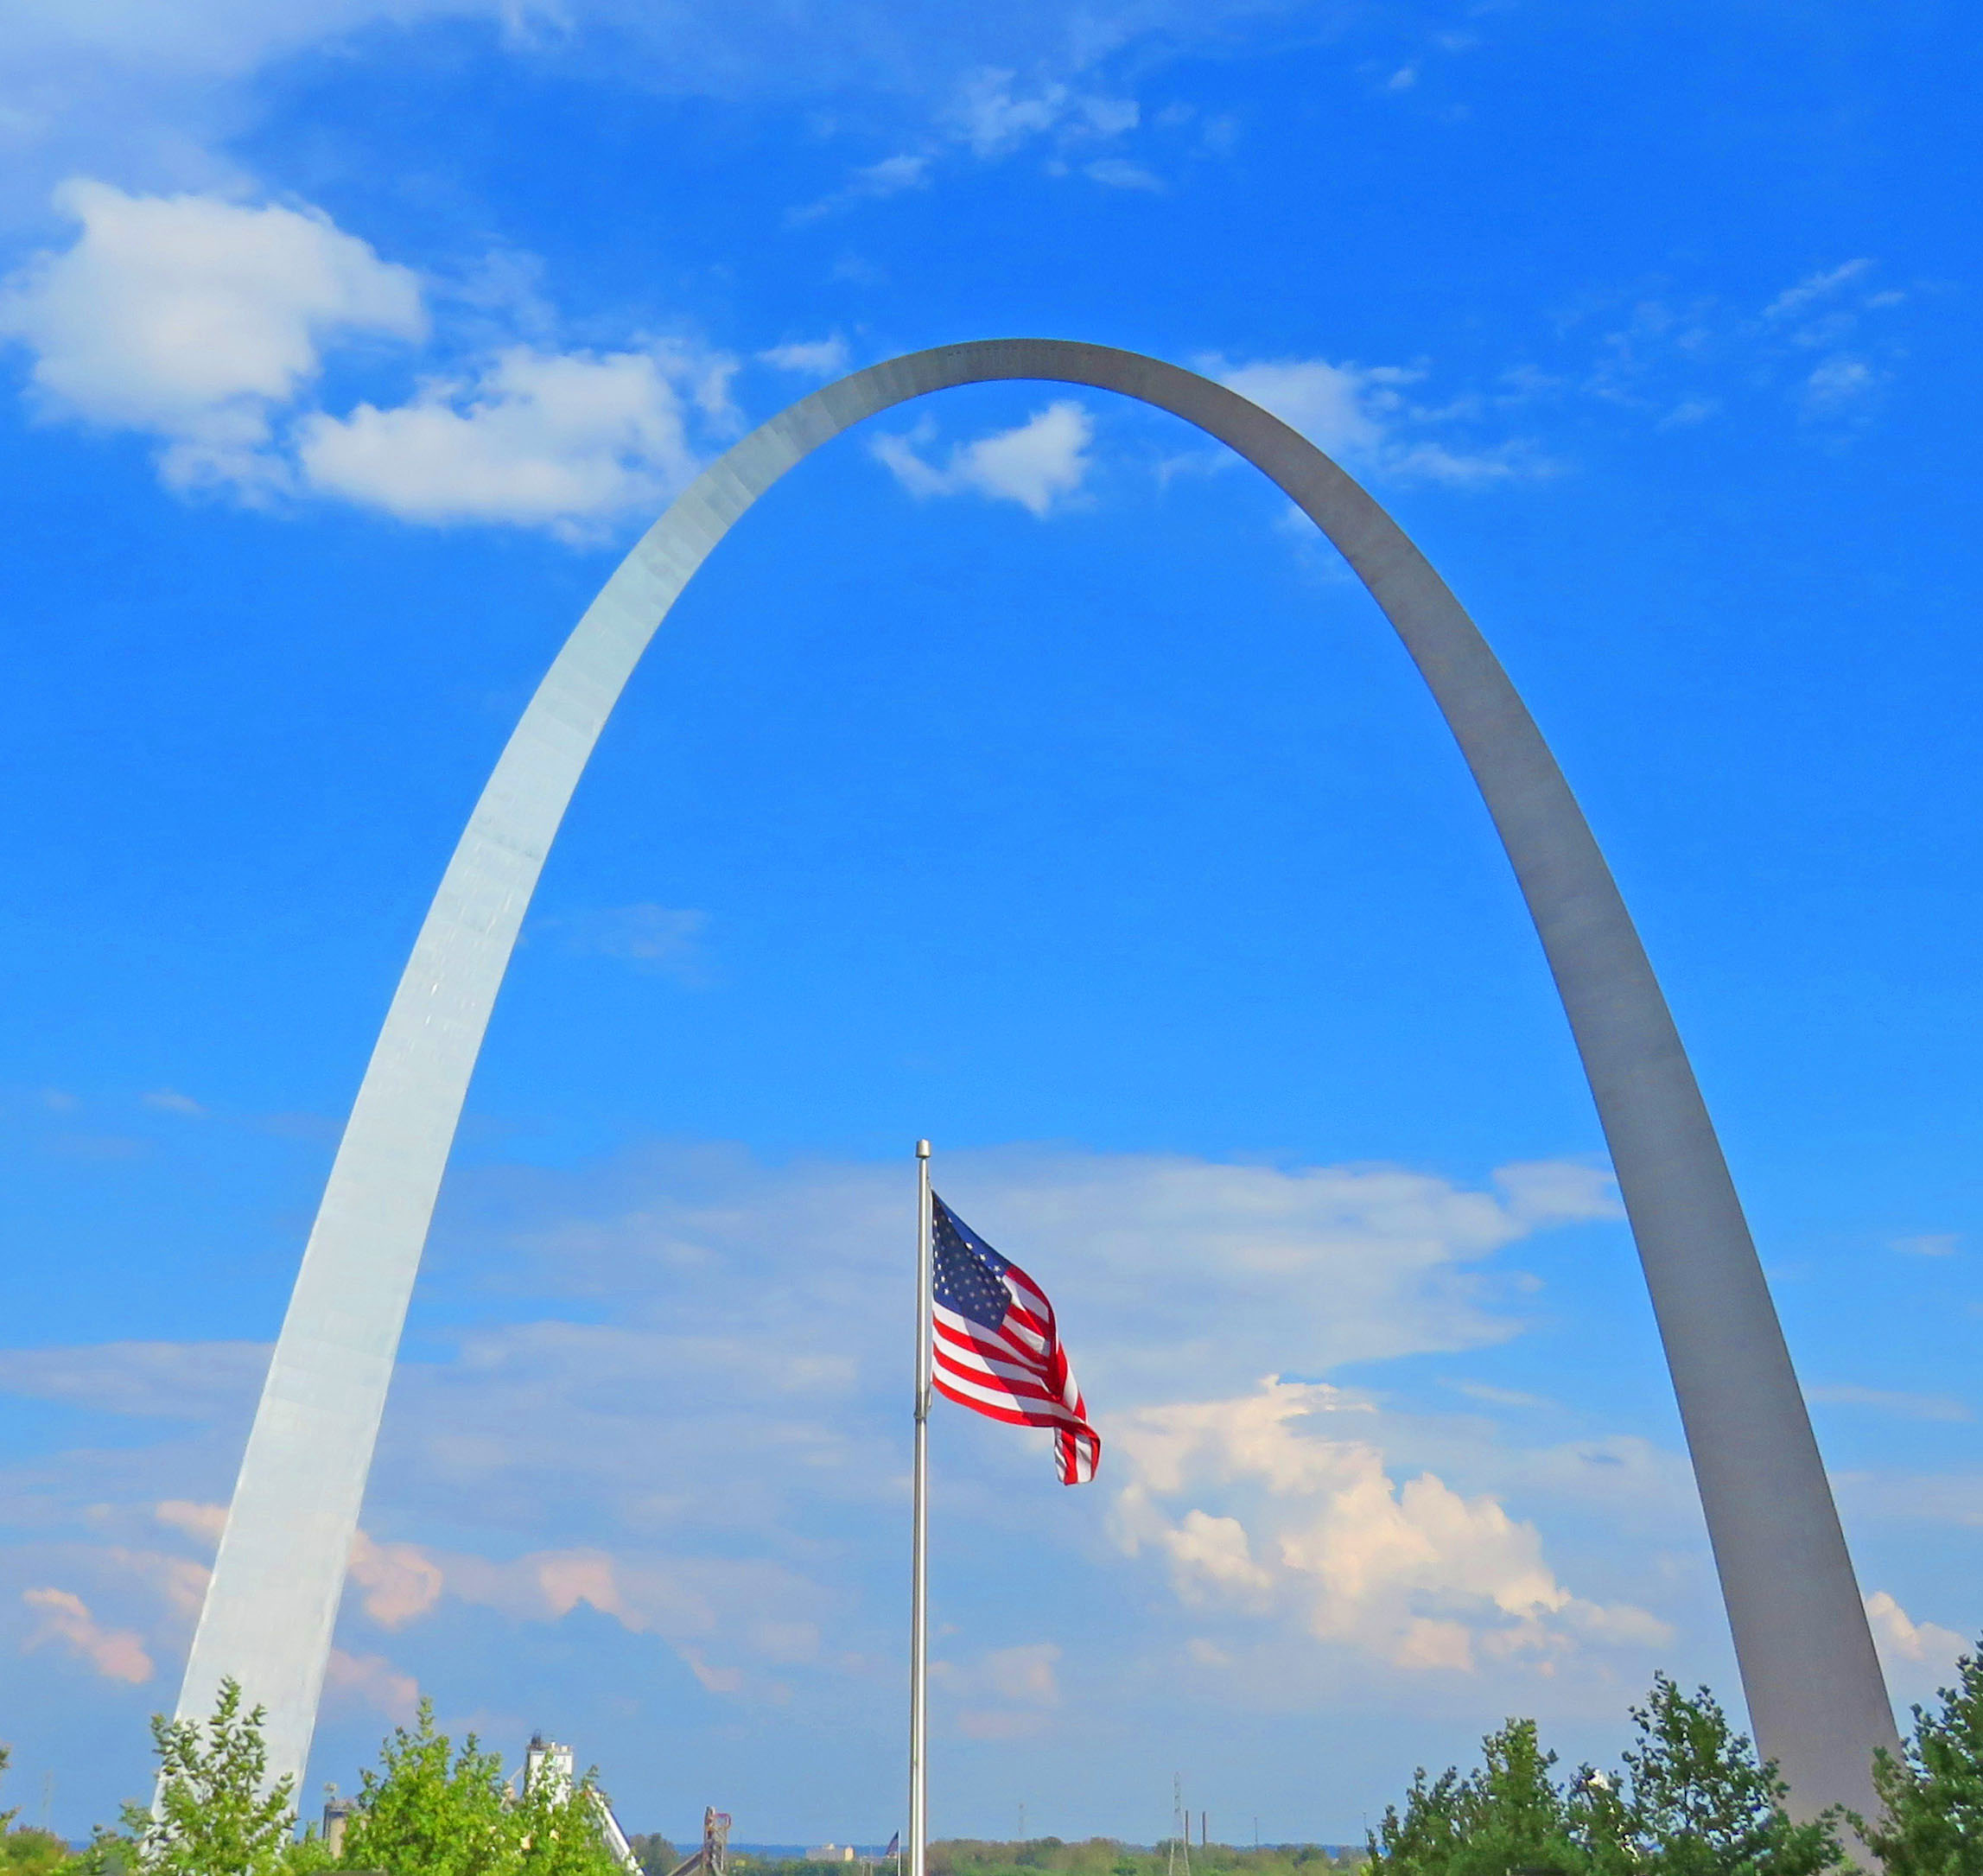 The Gateway Arch at t he Jefferson Expansion Memorial in St. Louis, Missouri: Glynn Wilson